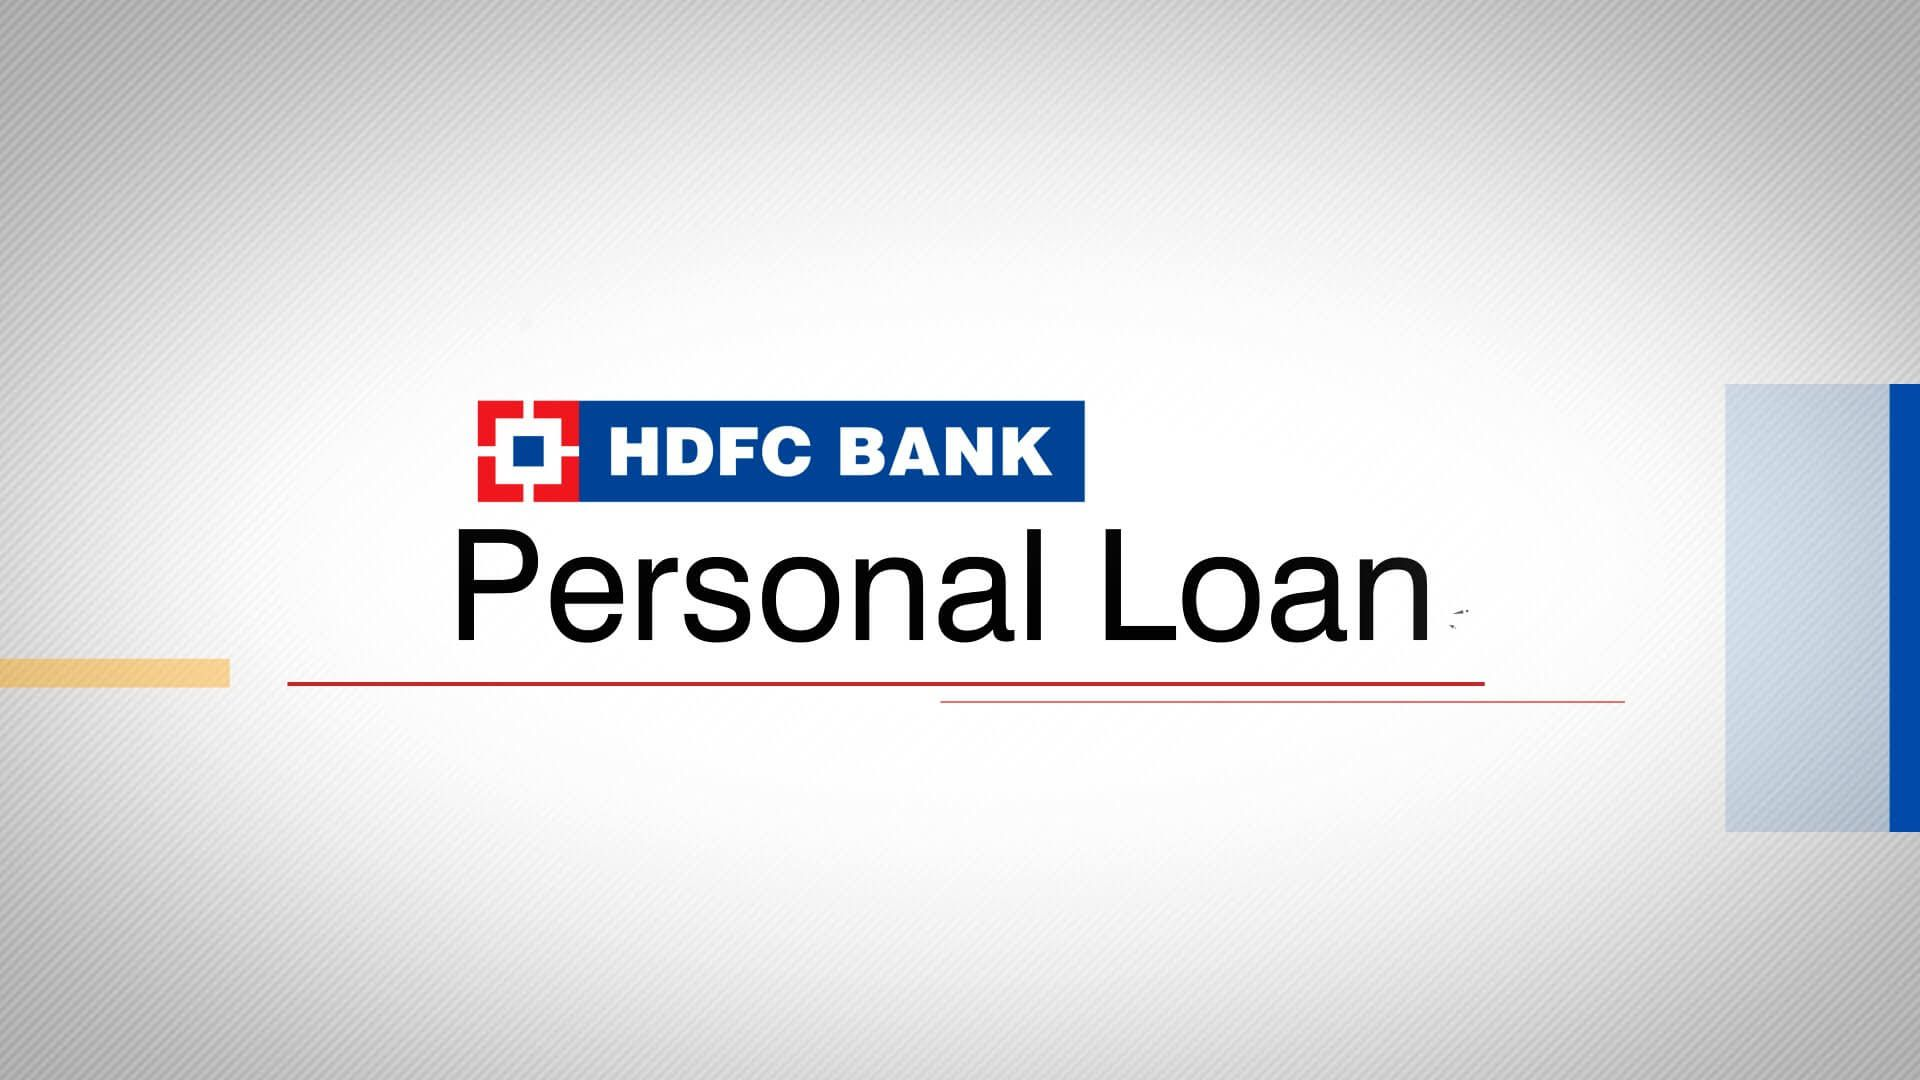 Hdfc Bank Personal Loan 10 75 P A Instant Approval Within 5 Minutes 24 Dec 2020 Customer Care Quotes Personal Loans Personal Loans Online